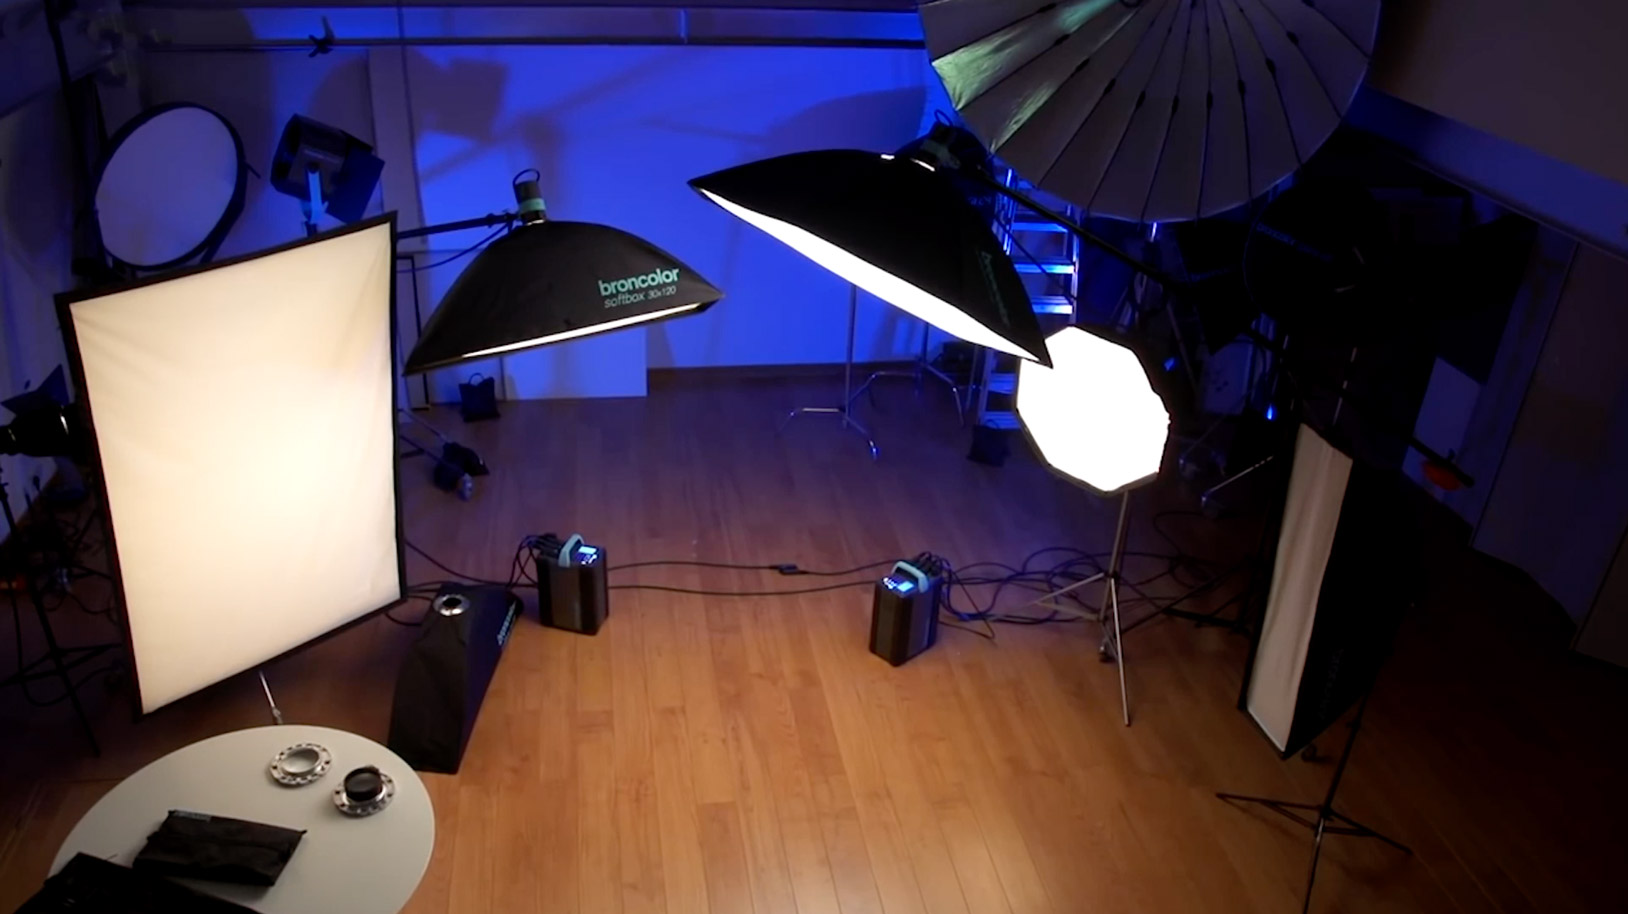 Softboxes in a small photography studio